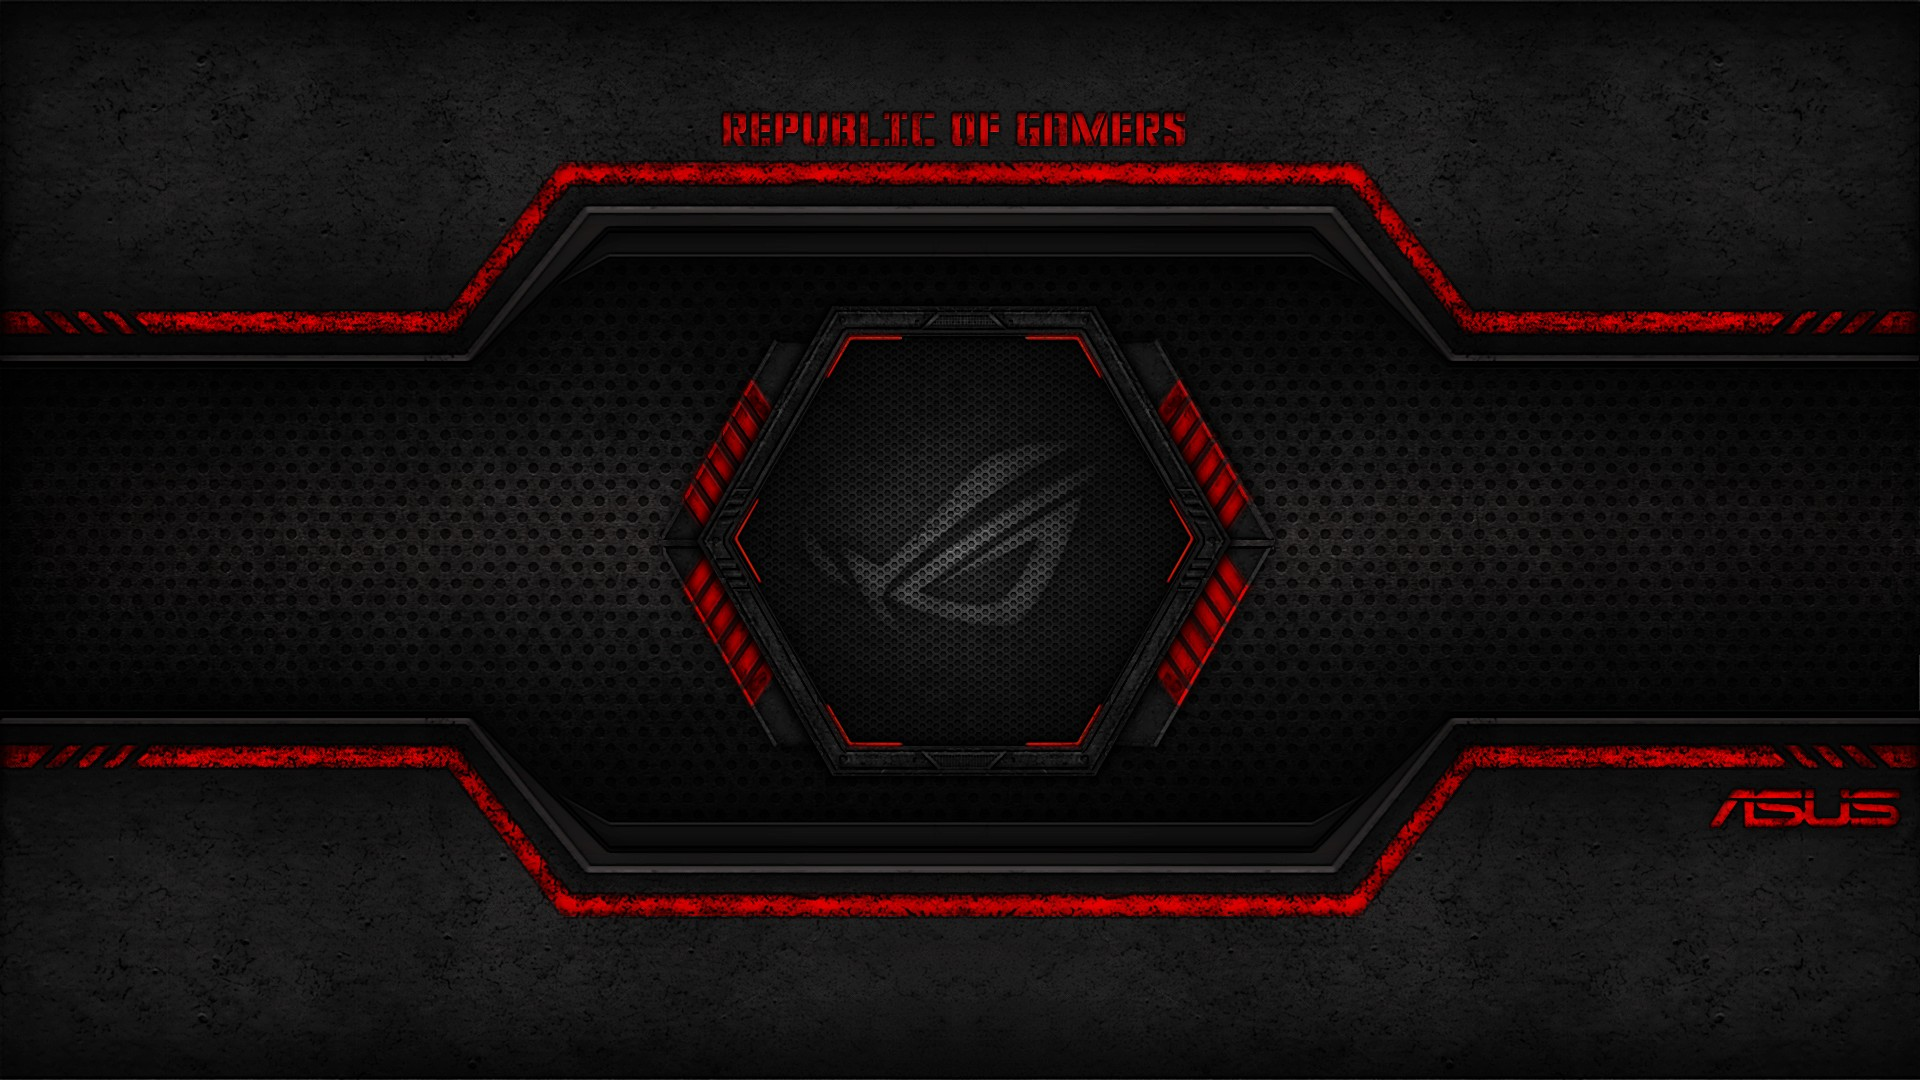 Asus ROG HEXAGON V3.0 - By BeautyDesignz